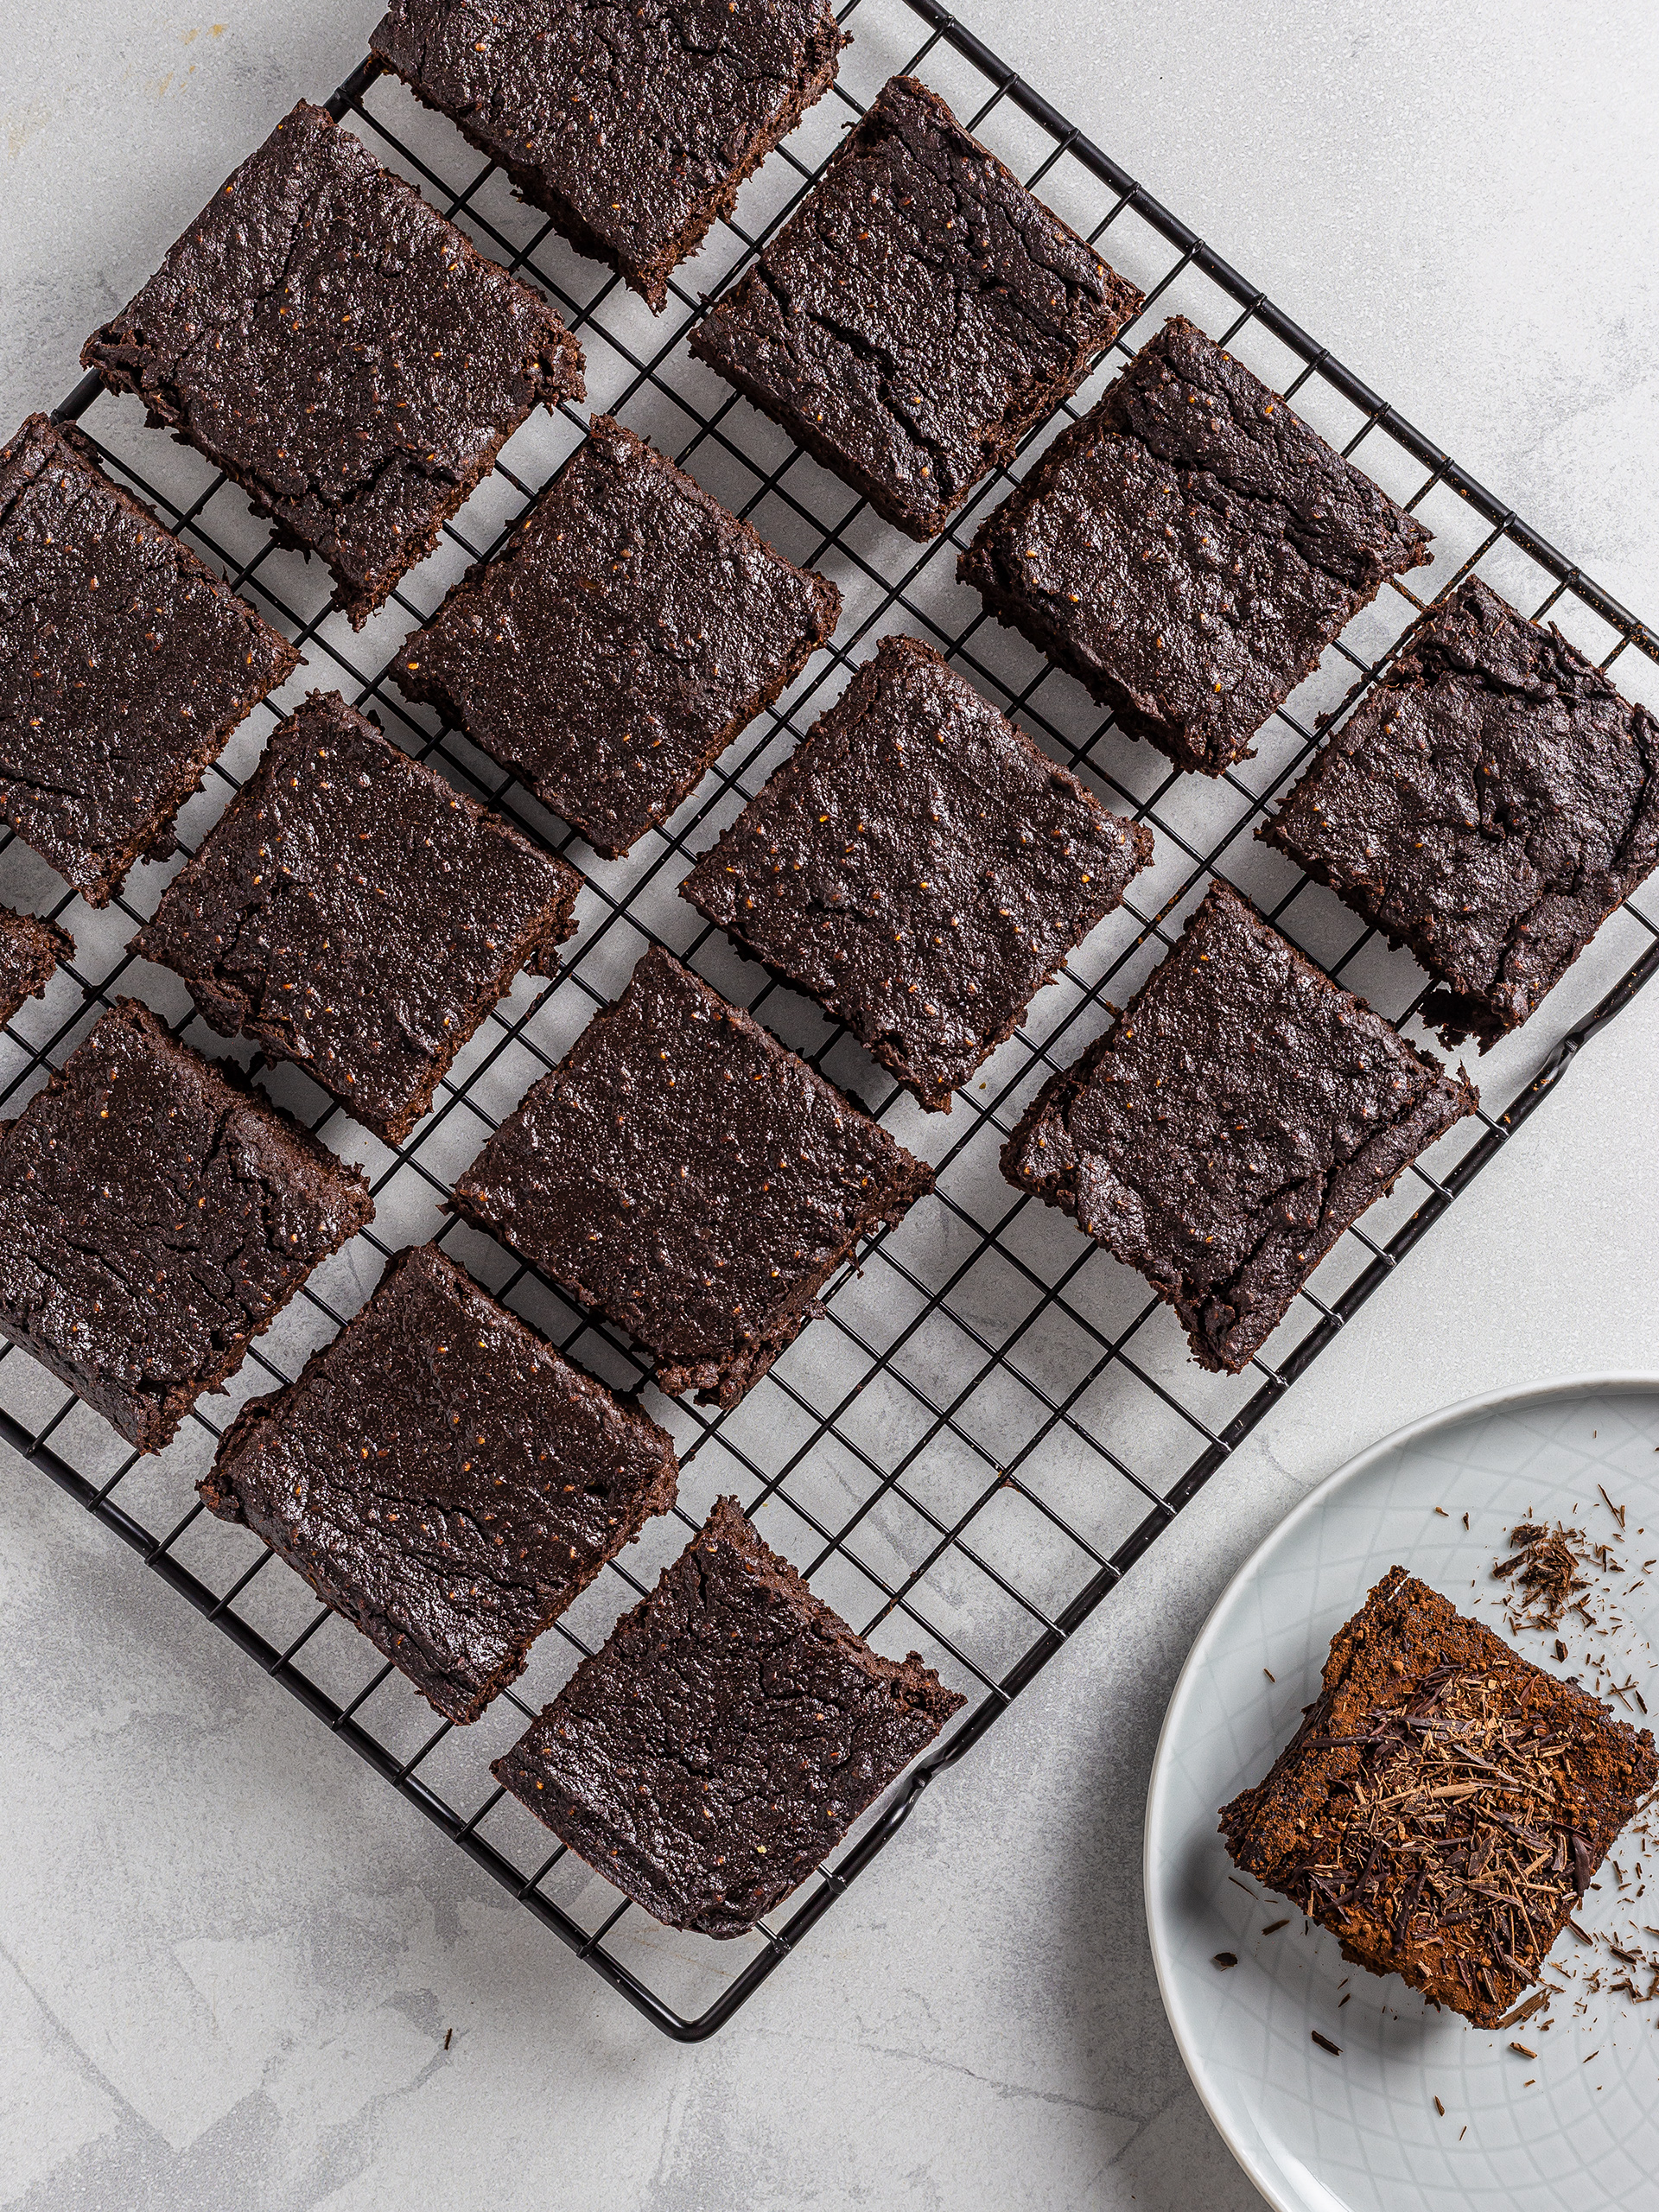 Chocolate brownies cut into squares